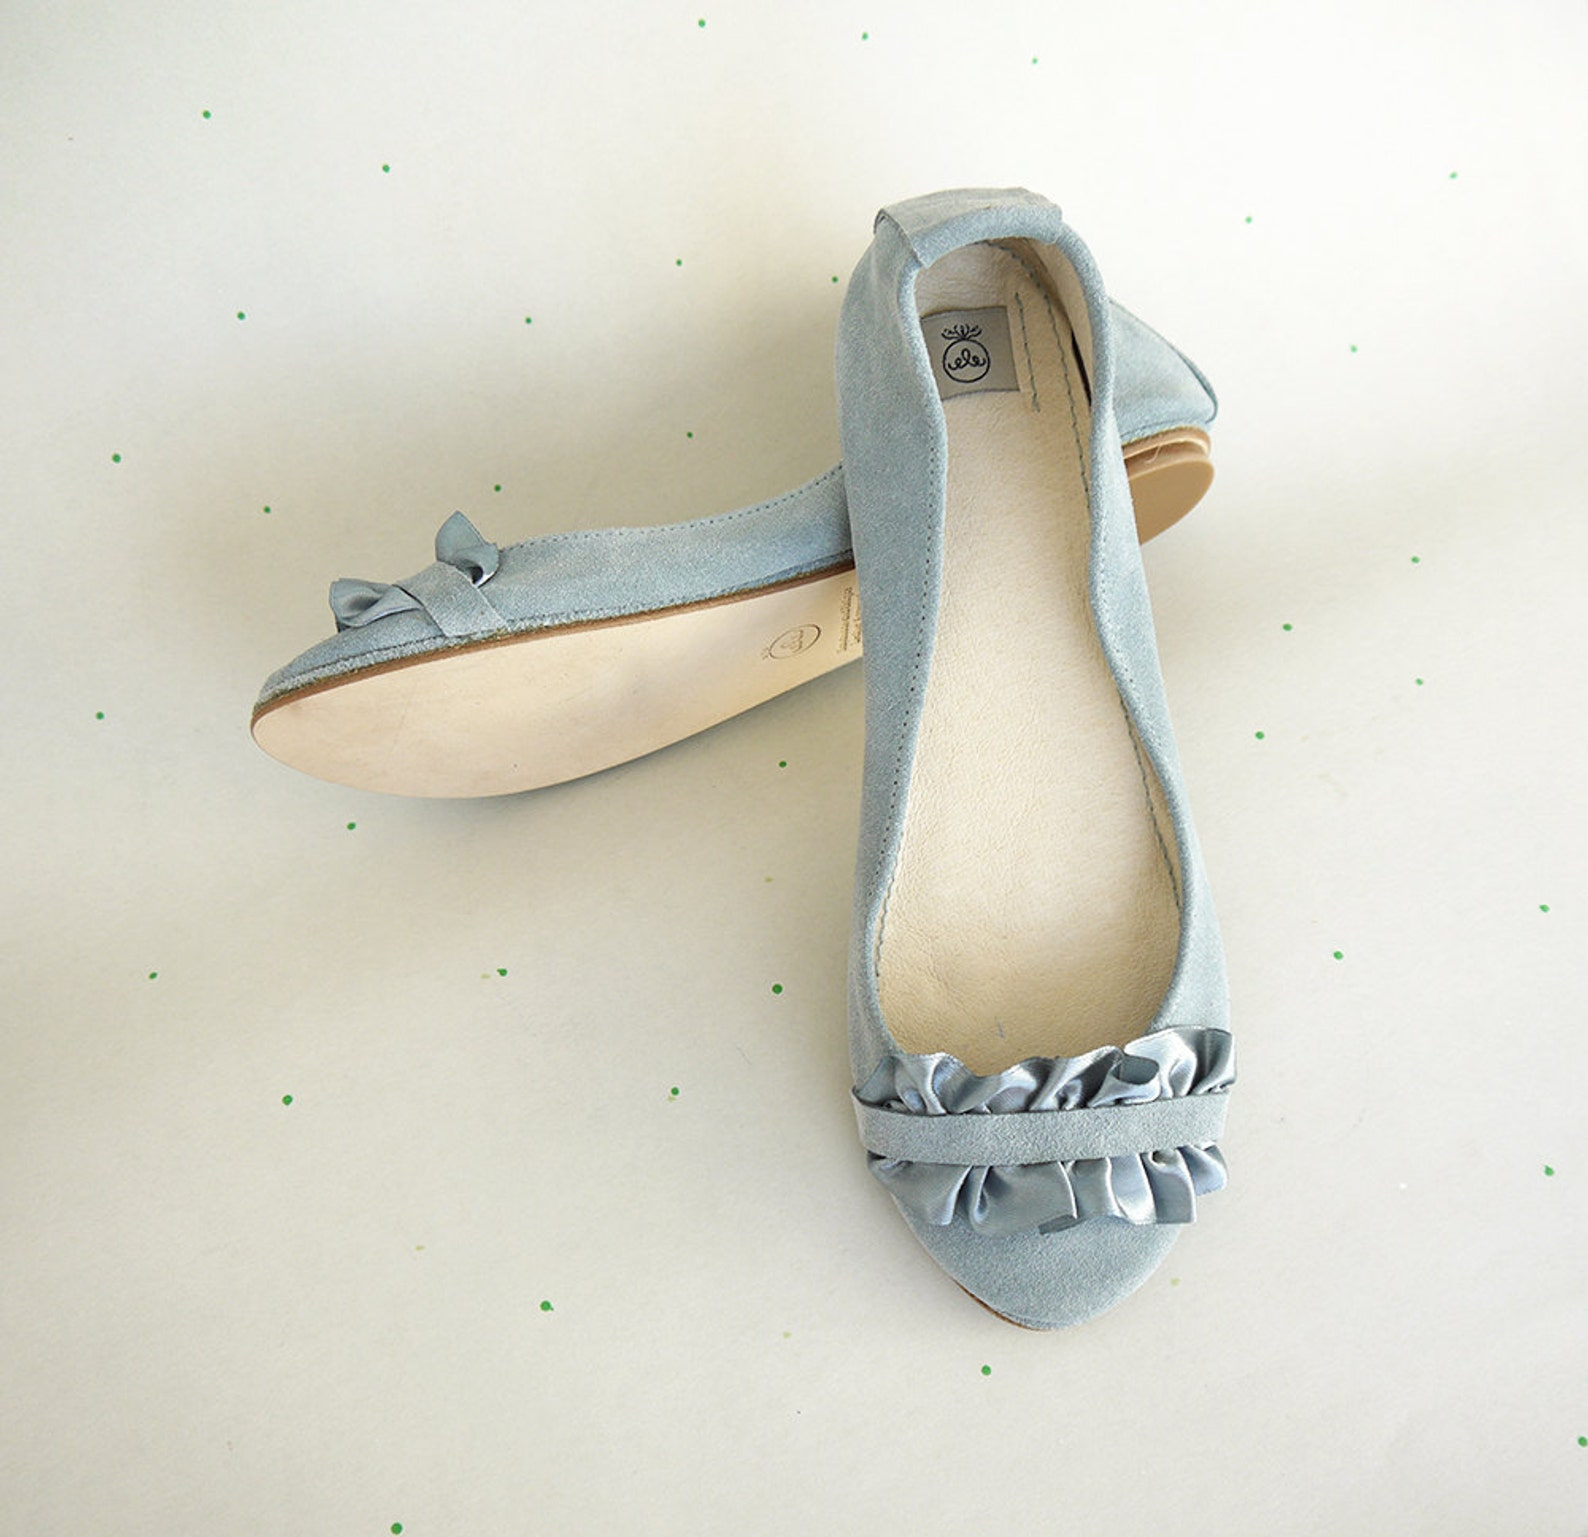 bridal shoes. wedding ballet flats with satin ribbon. bride low heel. pointe shoes. serenity leather flats. ruffle shoes. brides